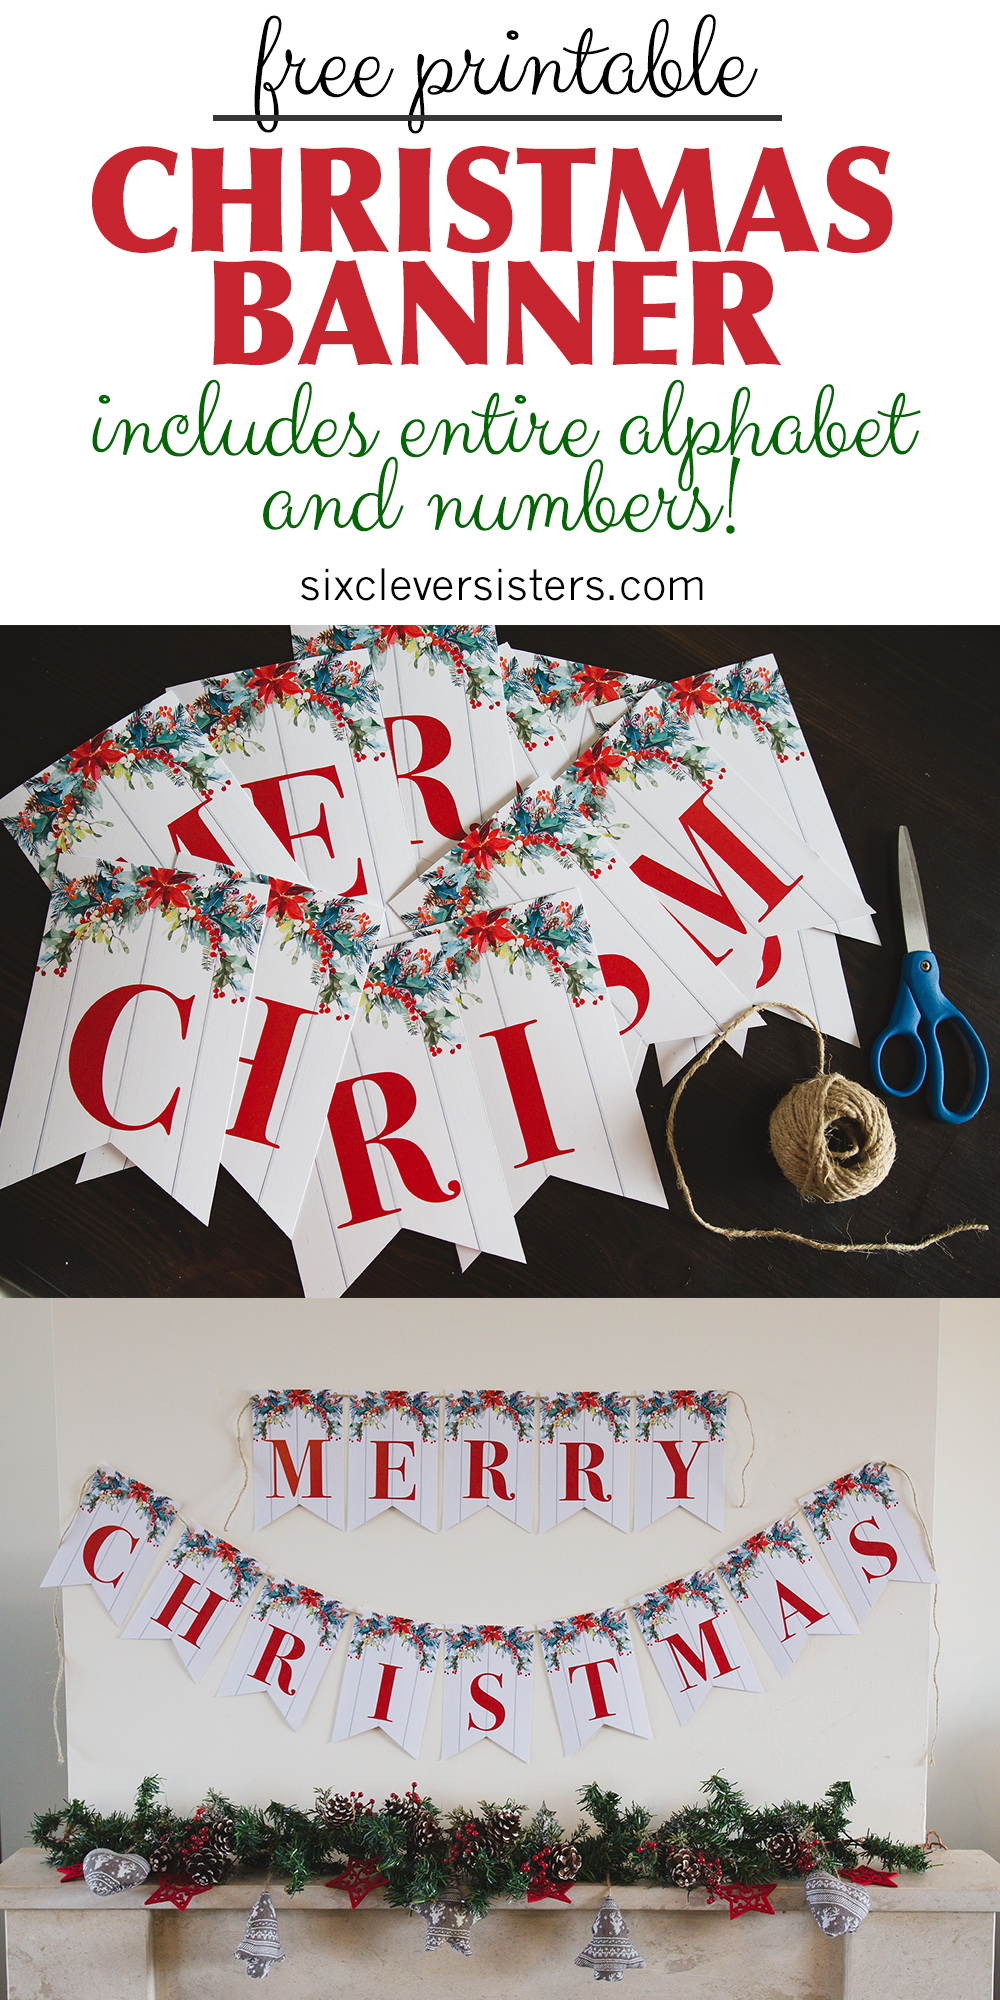 picture relating to Merry Christmas Printable identify Printable Merry Xmas Banner - 6 Good Sisters